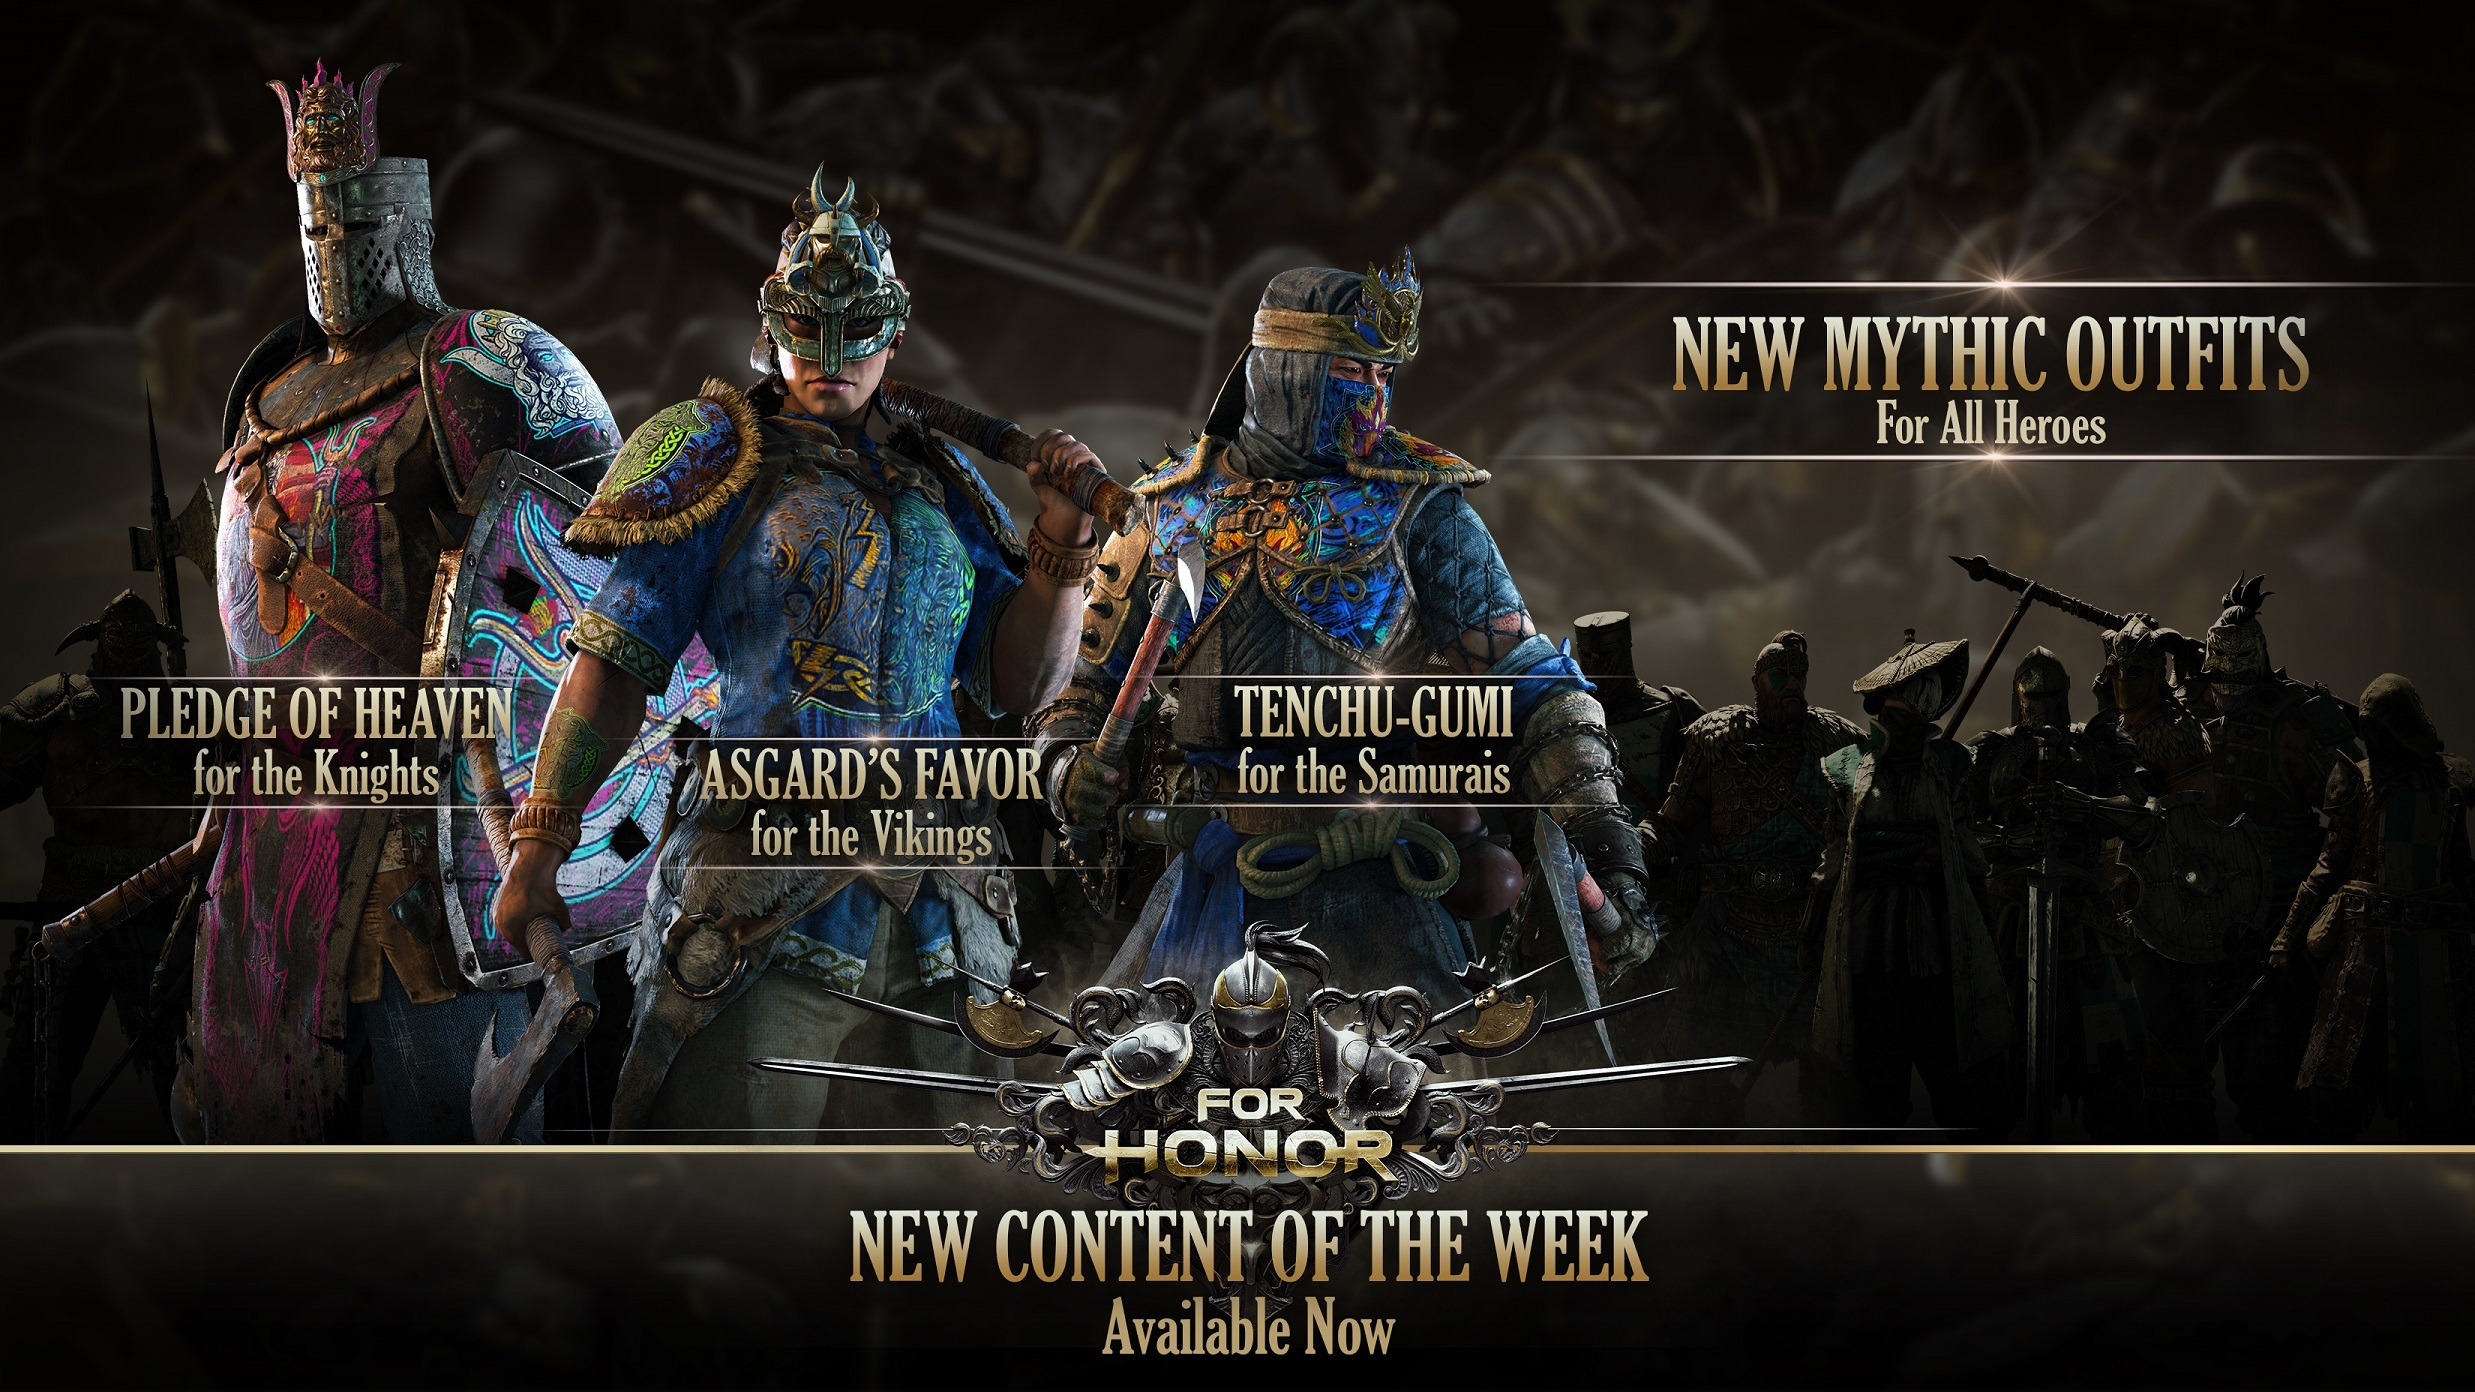 For Honor For Honor New Content Of The Week April 26